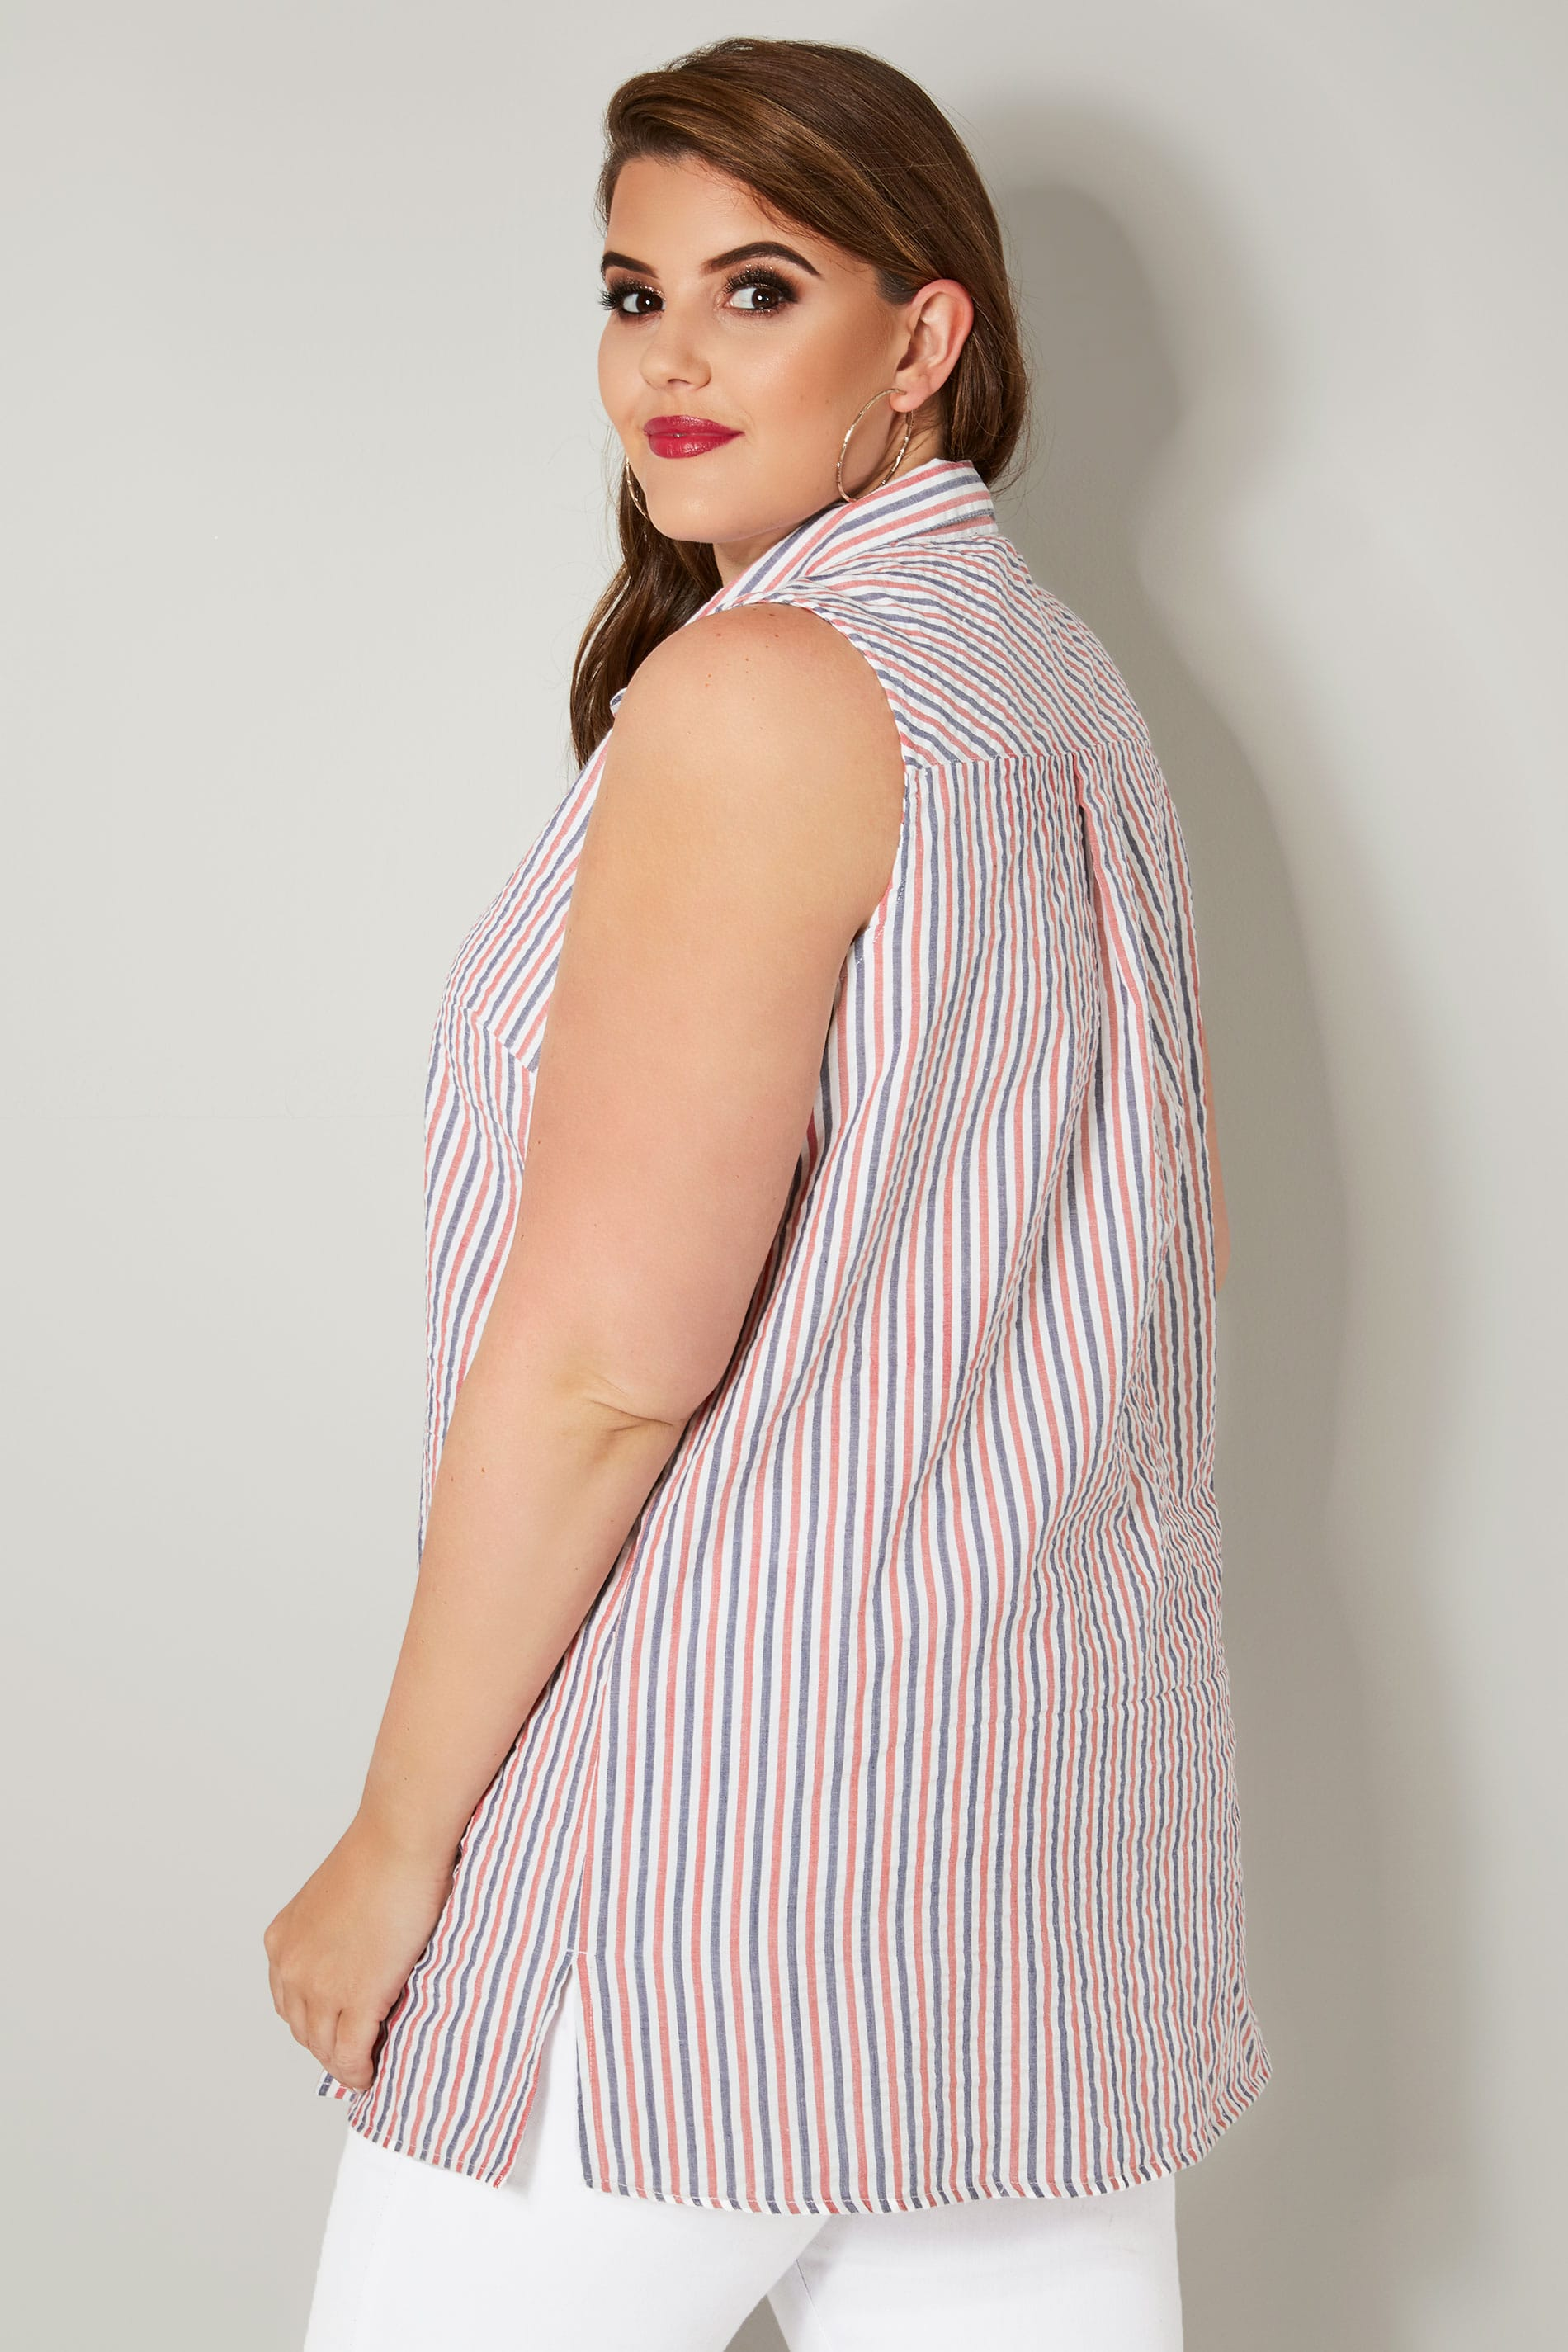 Red & Blue Striped Sleeveless Shirt, plus size 16 to 32